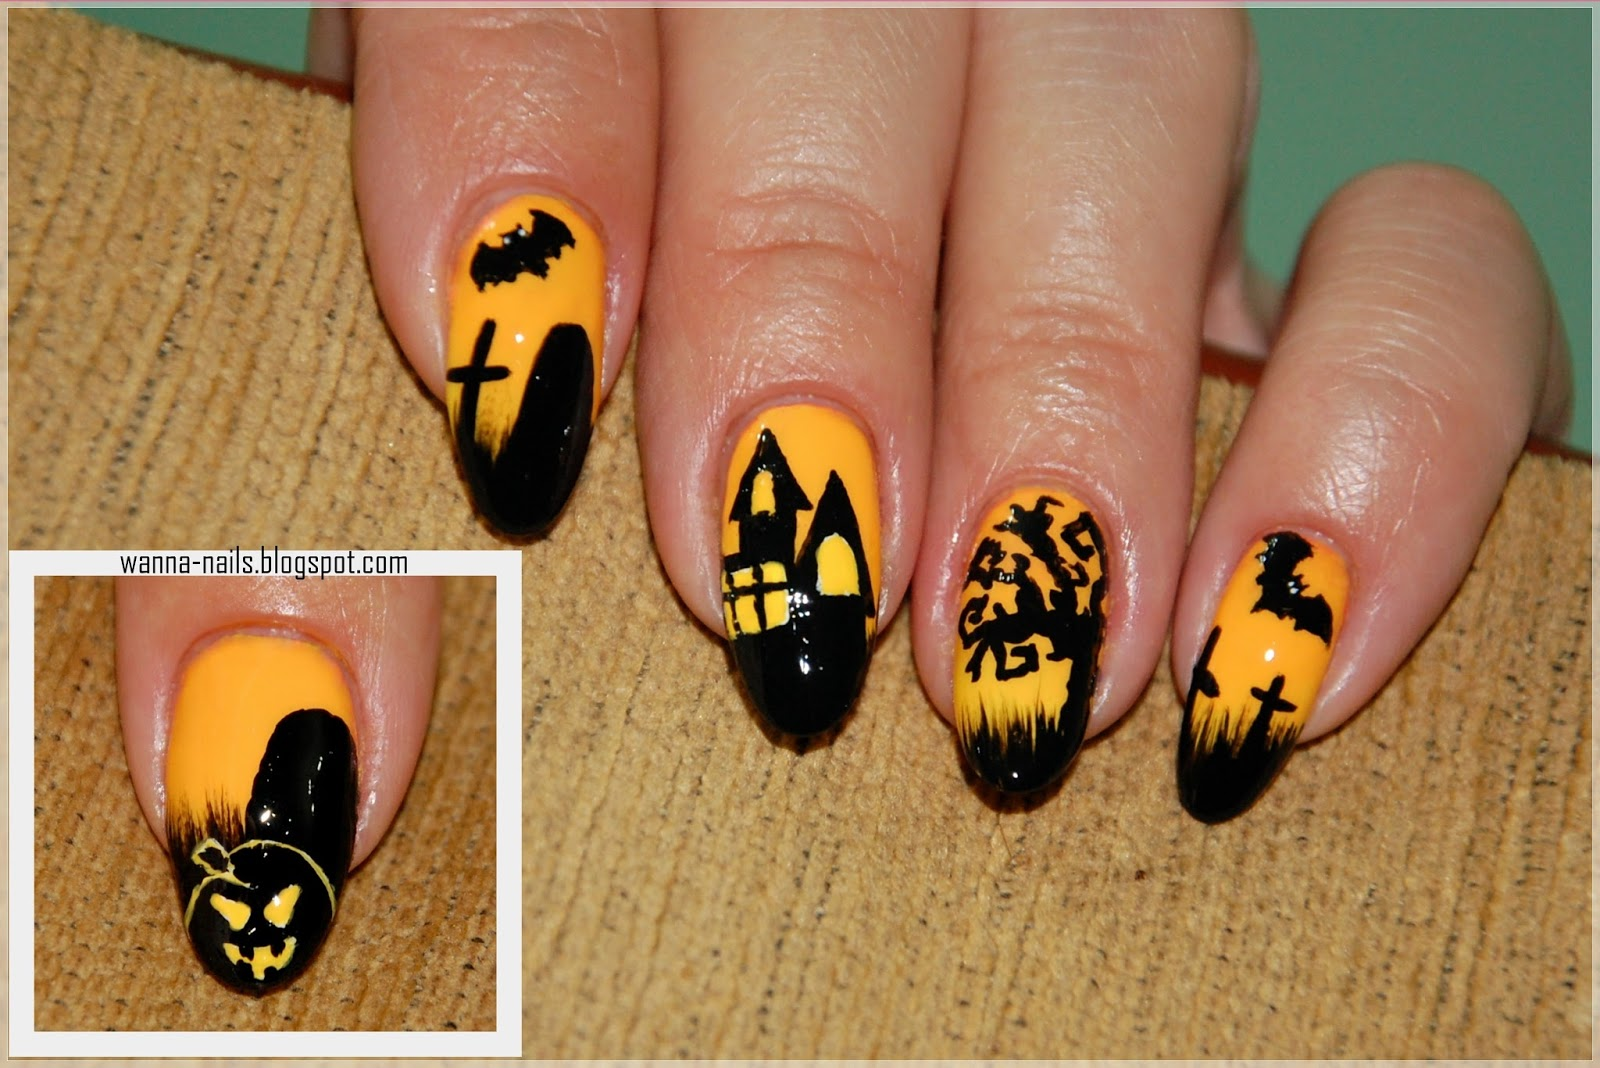 http://wanna-nails.blogspot.ro/2013/10/halloween.html